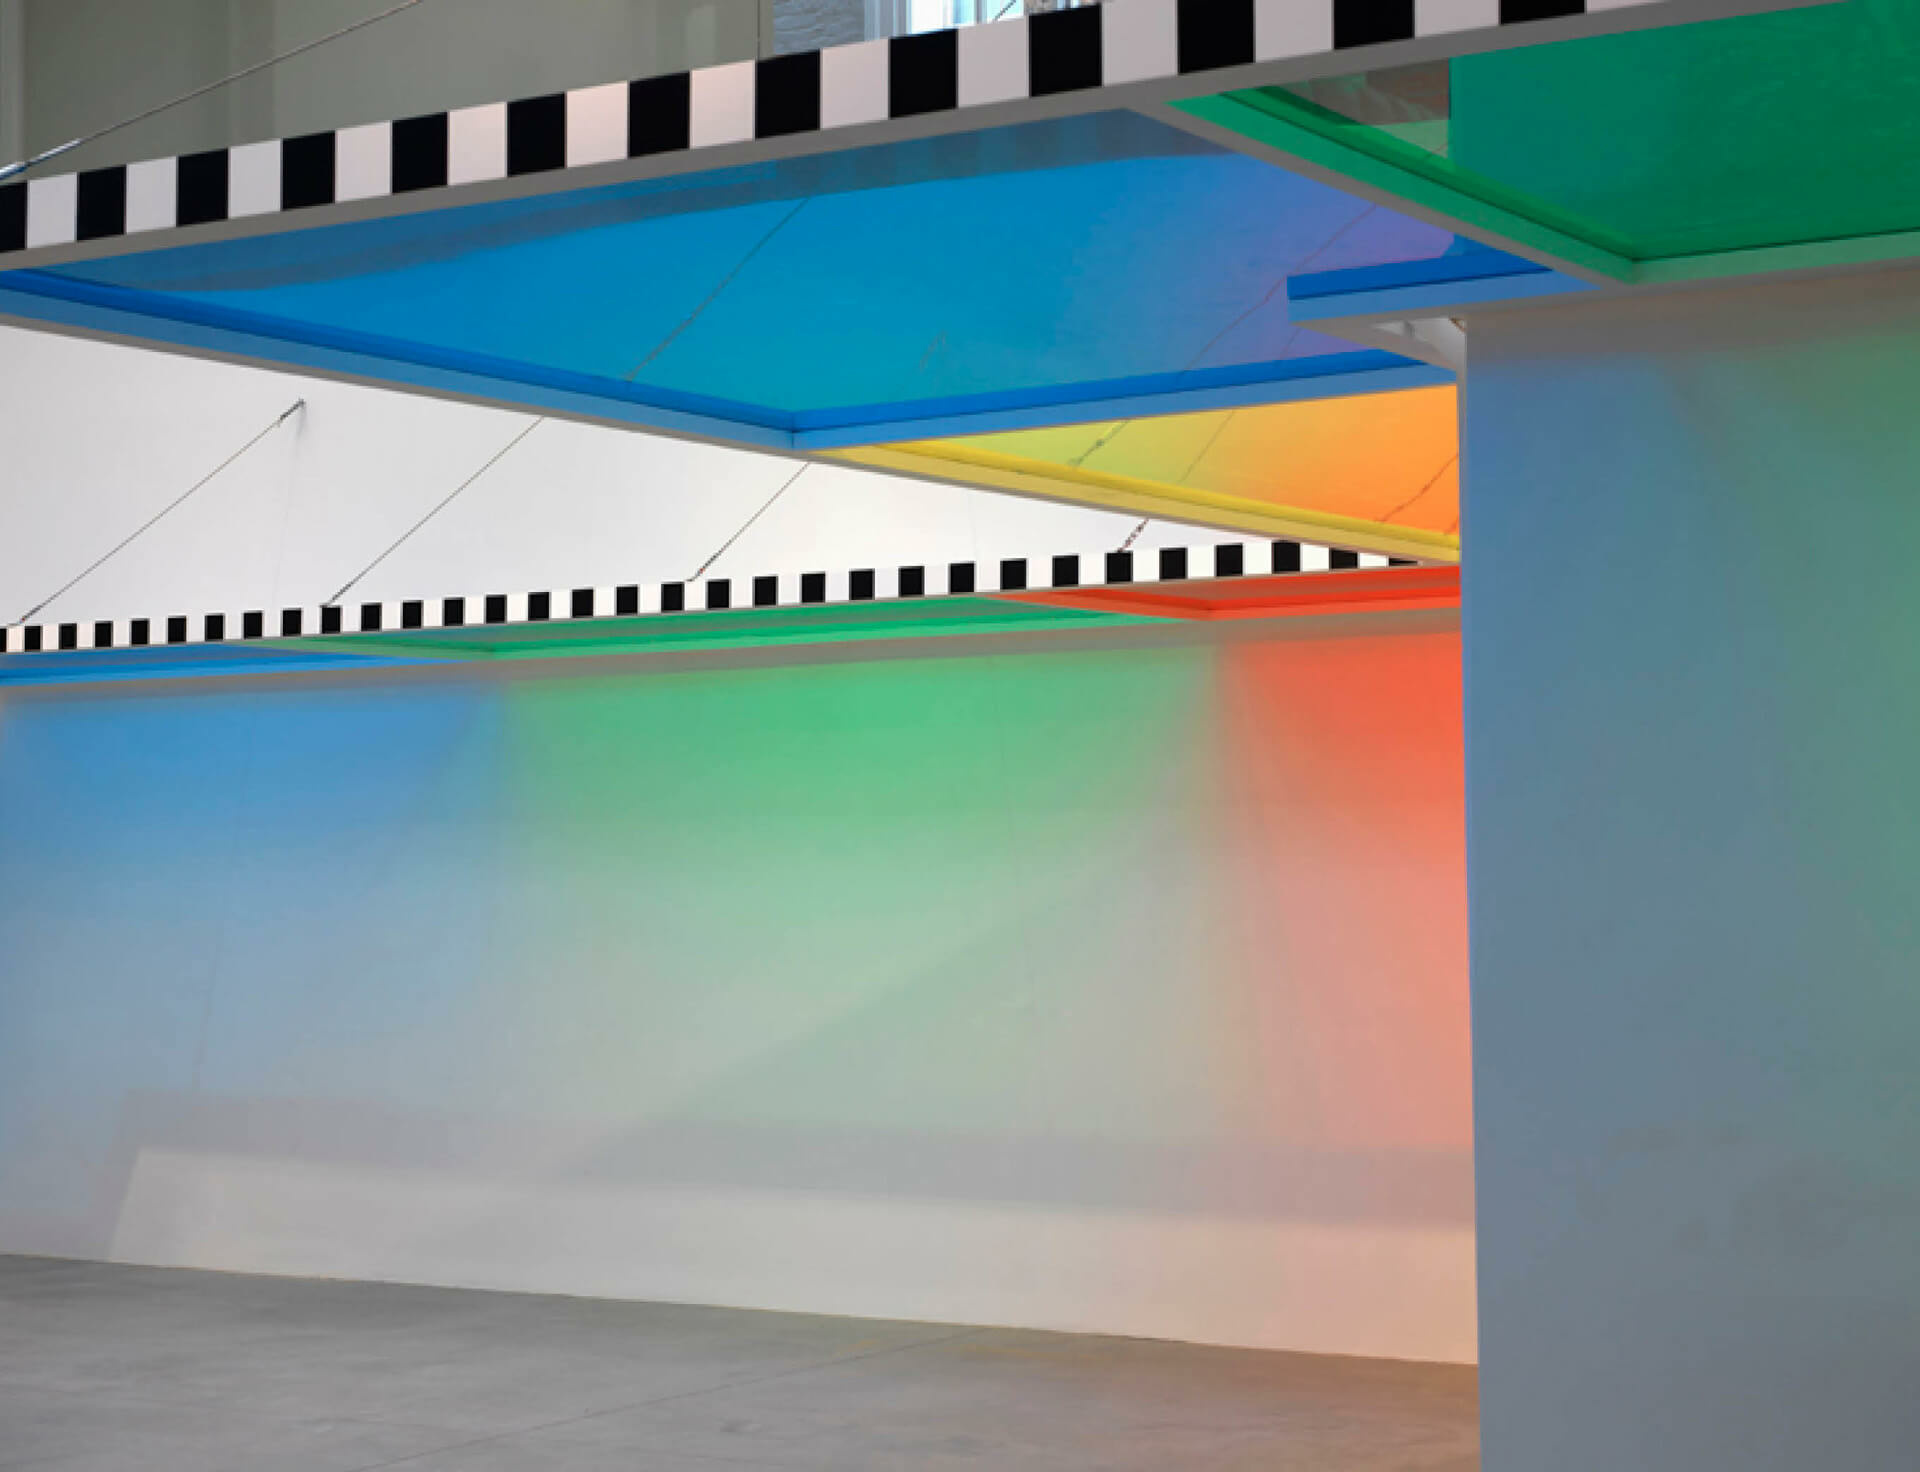 Daniel Buren: 'A Fresco' at BOZAR